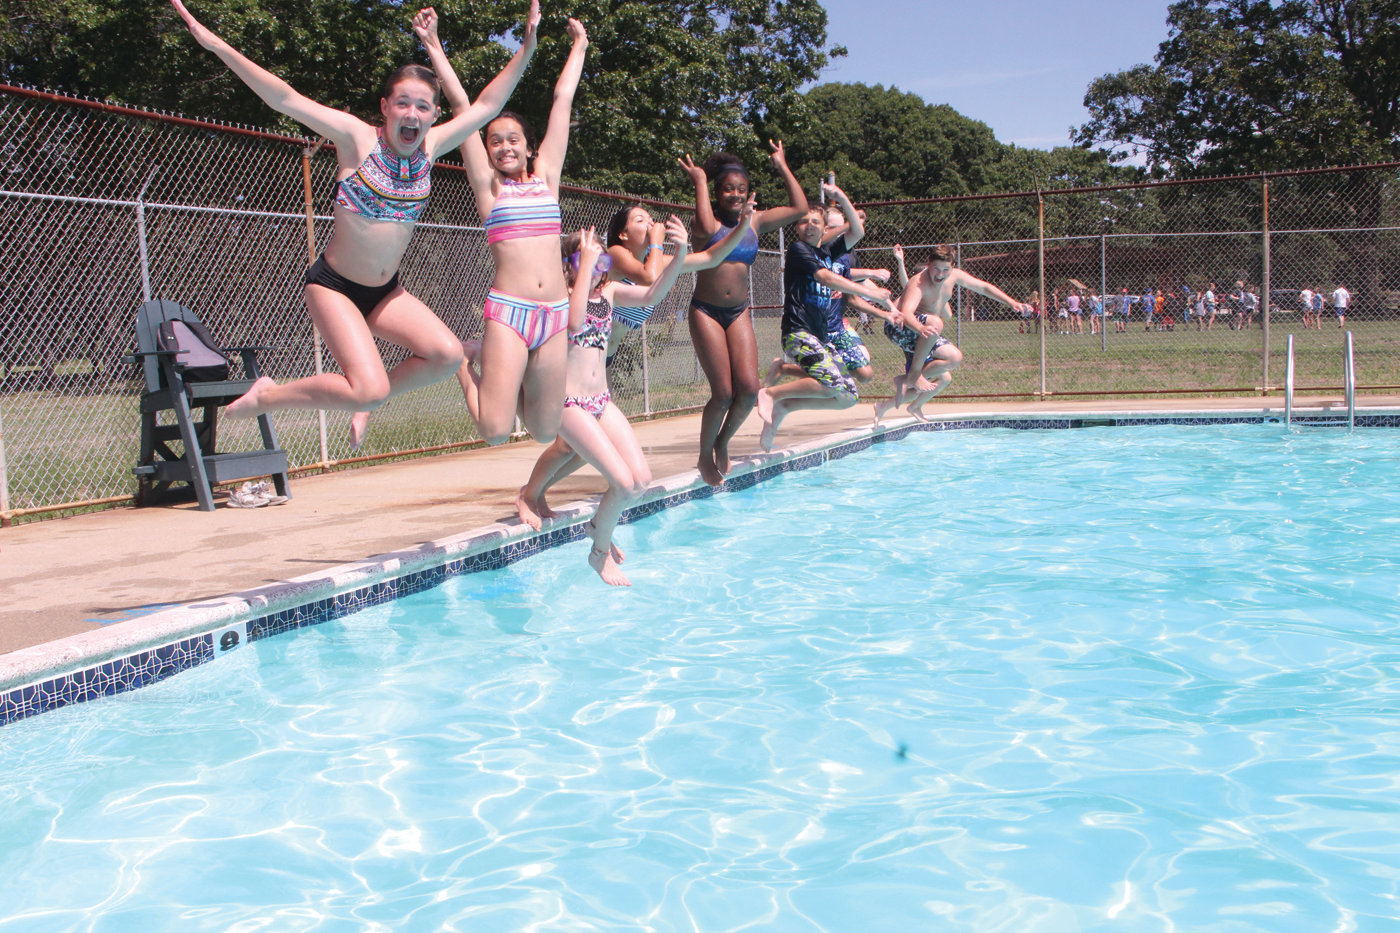 ON THE COUNT OF THREE: It didn't take any coaxing for these Boys and Girls Clubs of Warwick summer campers to leap into the pool at the Masonic grounds.